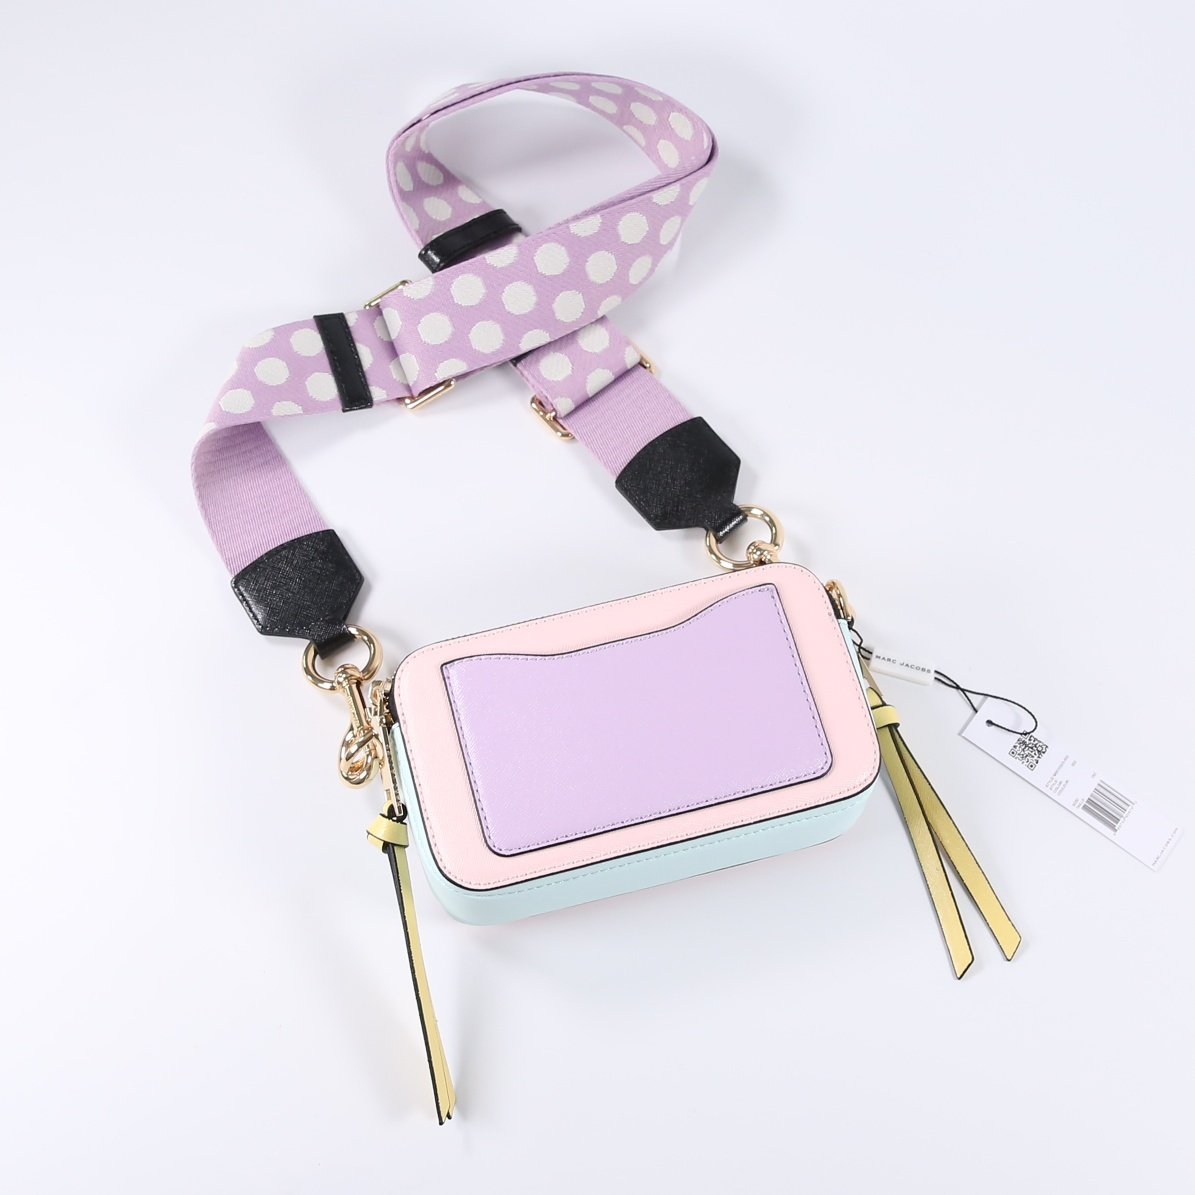 Marc Jacobs Snapshot Small Camera Bag Crossbody Bag Blush Multi Auth